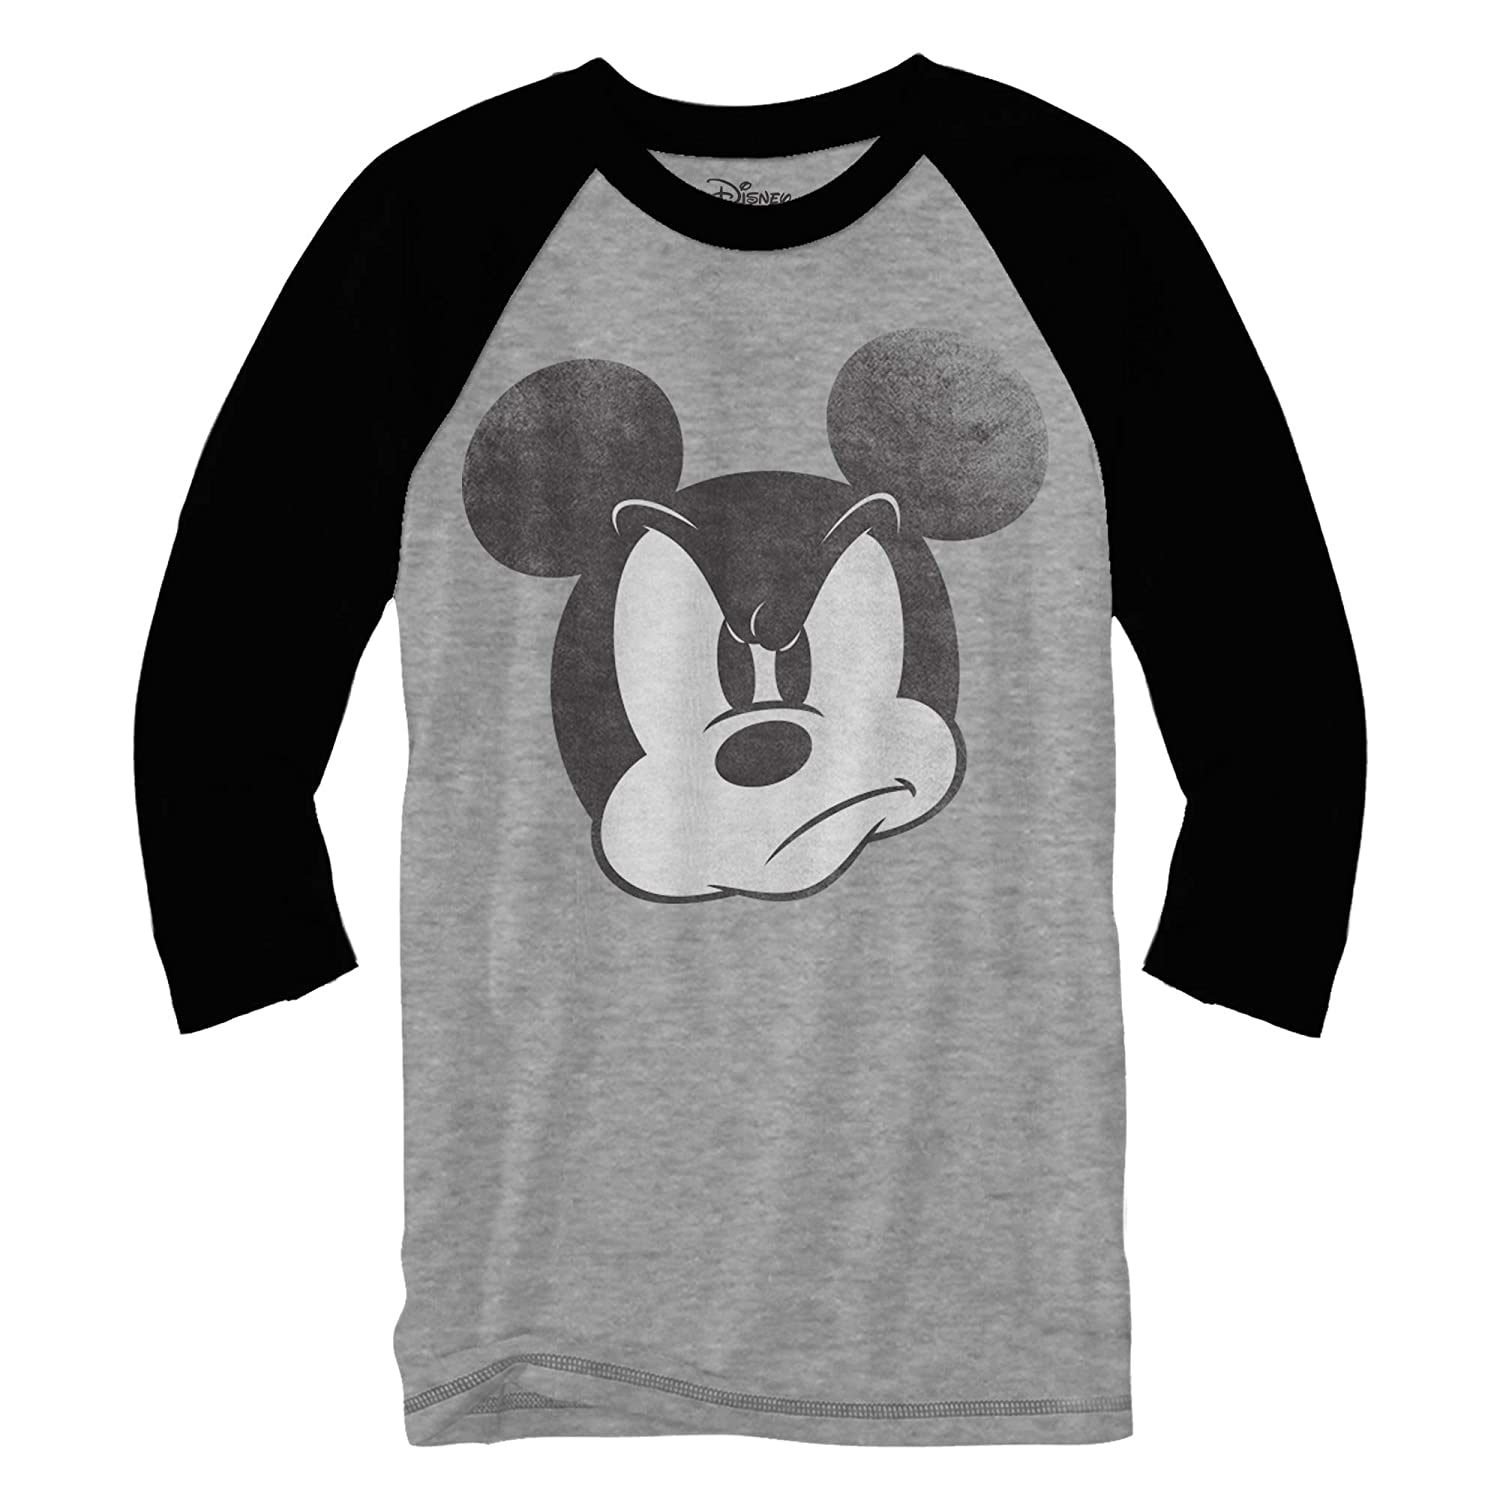 Mad Mickey Mouse Raglan Style 3/4 Length Sleeve Classic Vintage Disneyland  Funny Adult Mens Graphic Shirt